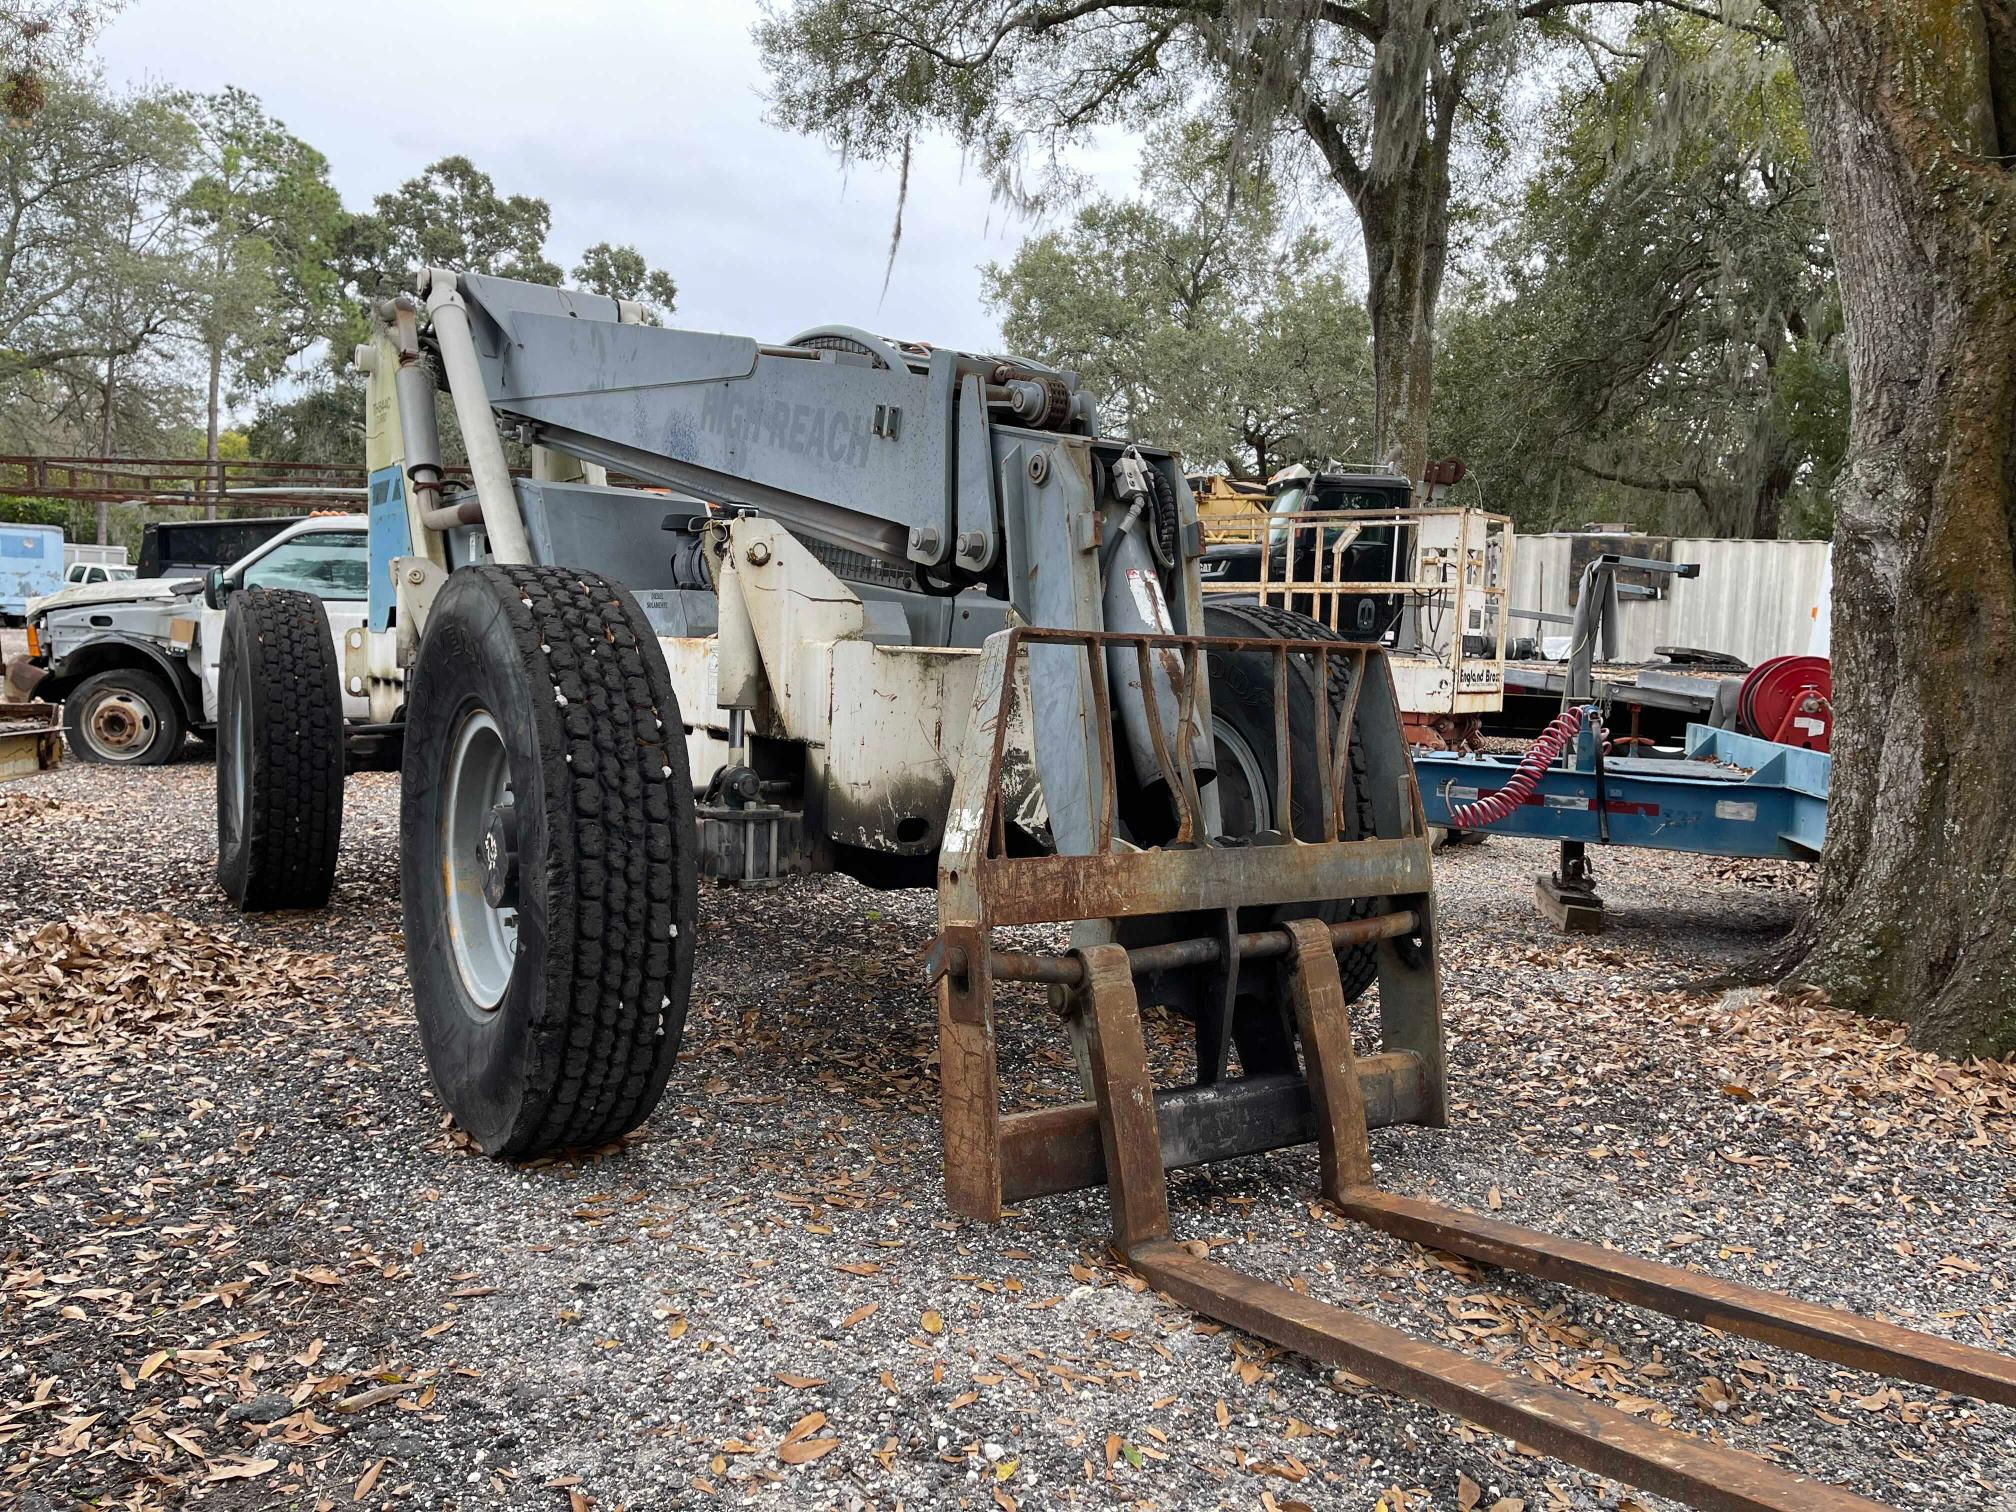 2003 Tere Forklift for sale in Riverview, FL